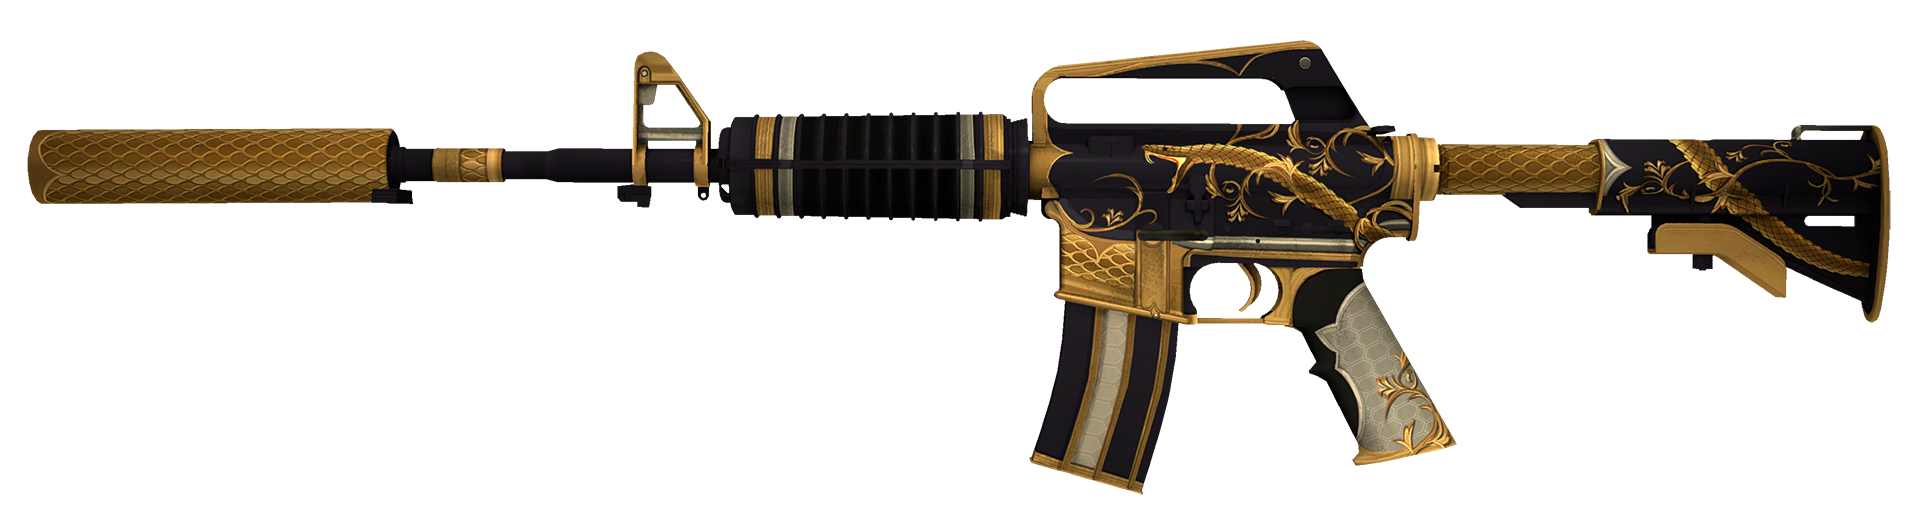 Gun skins page gameplay. Pubg m16 png jpg freeuse stock